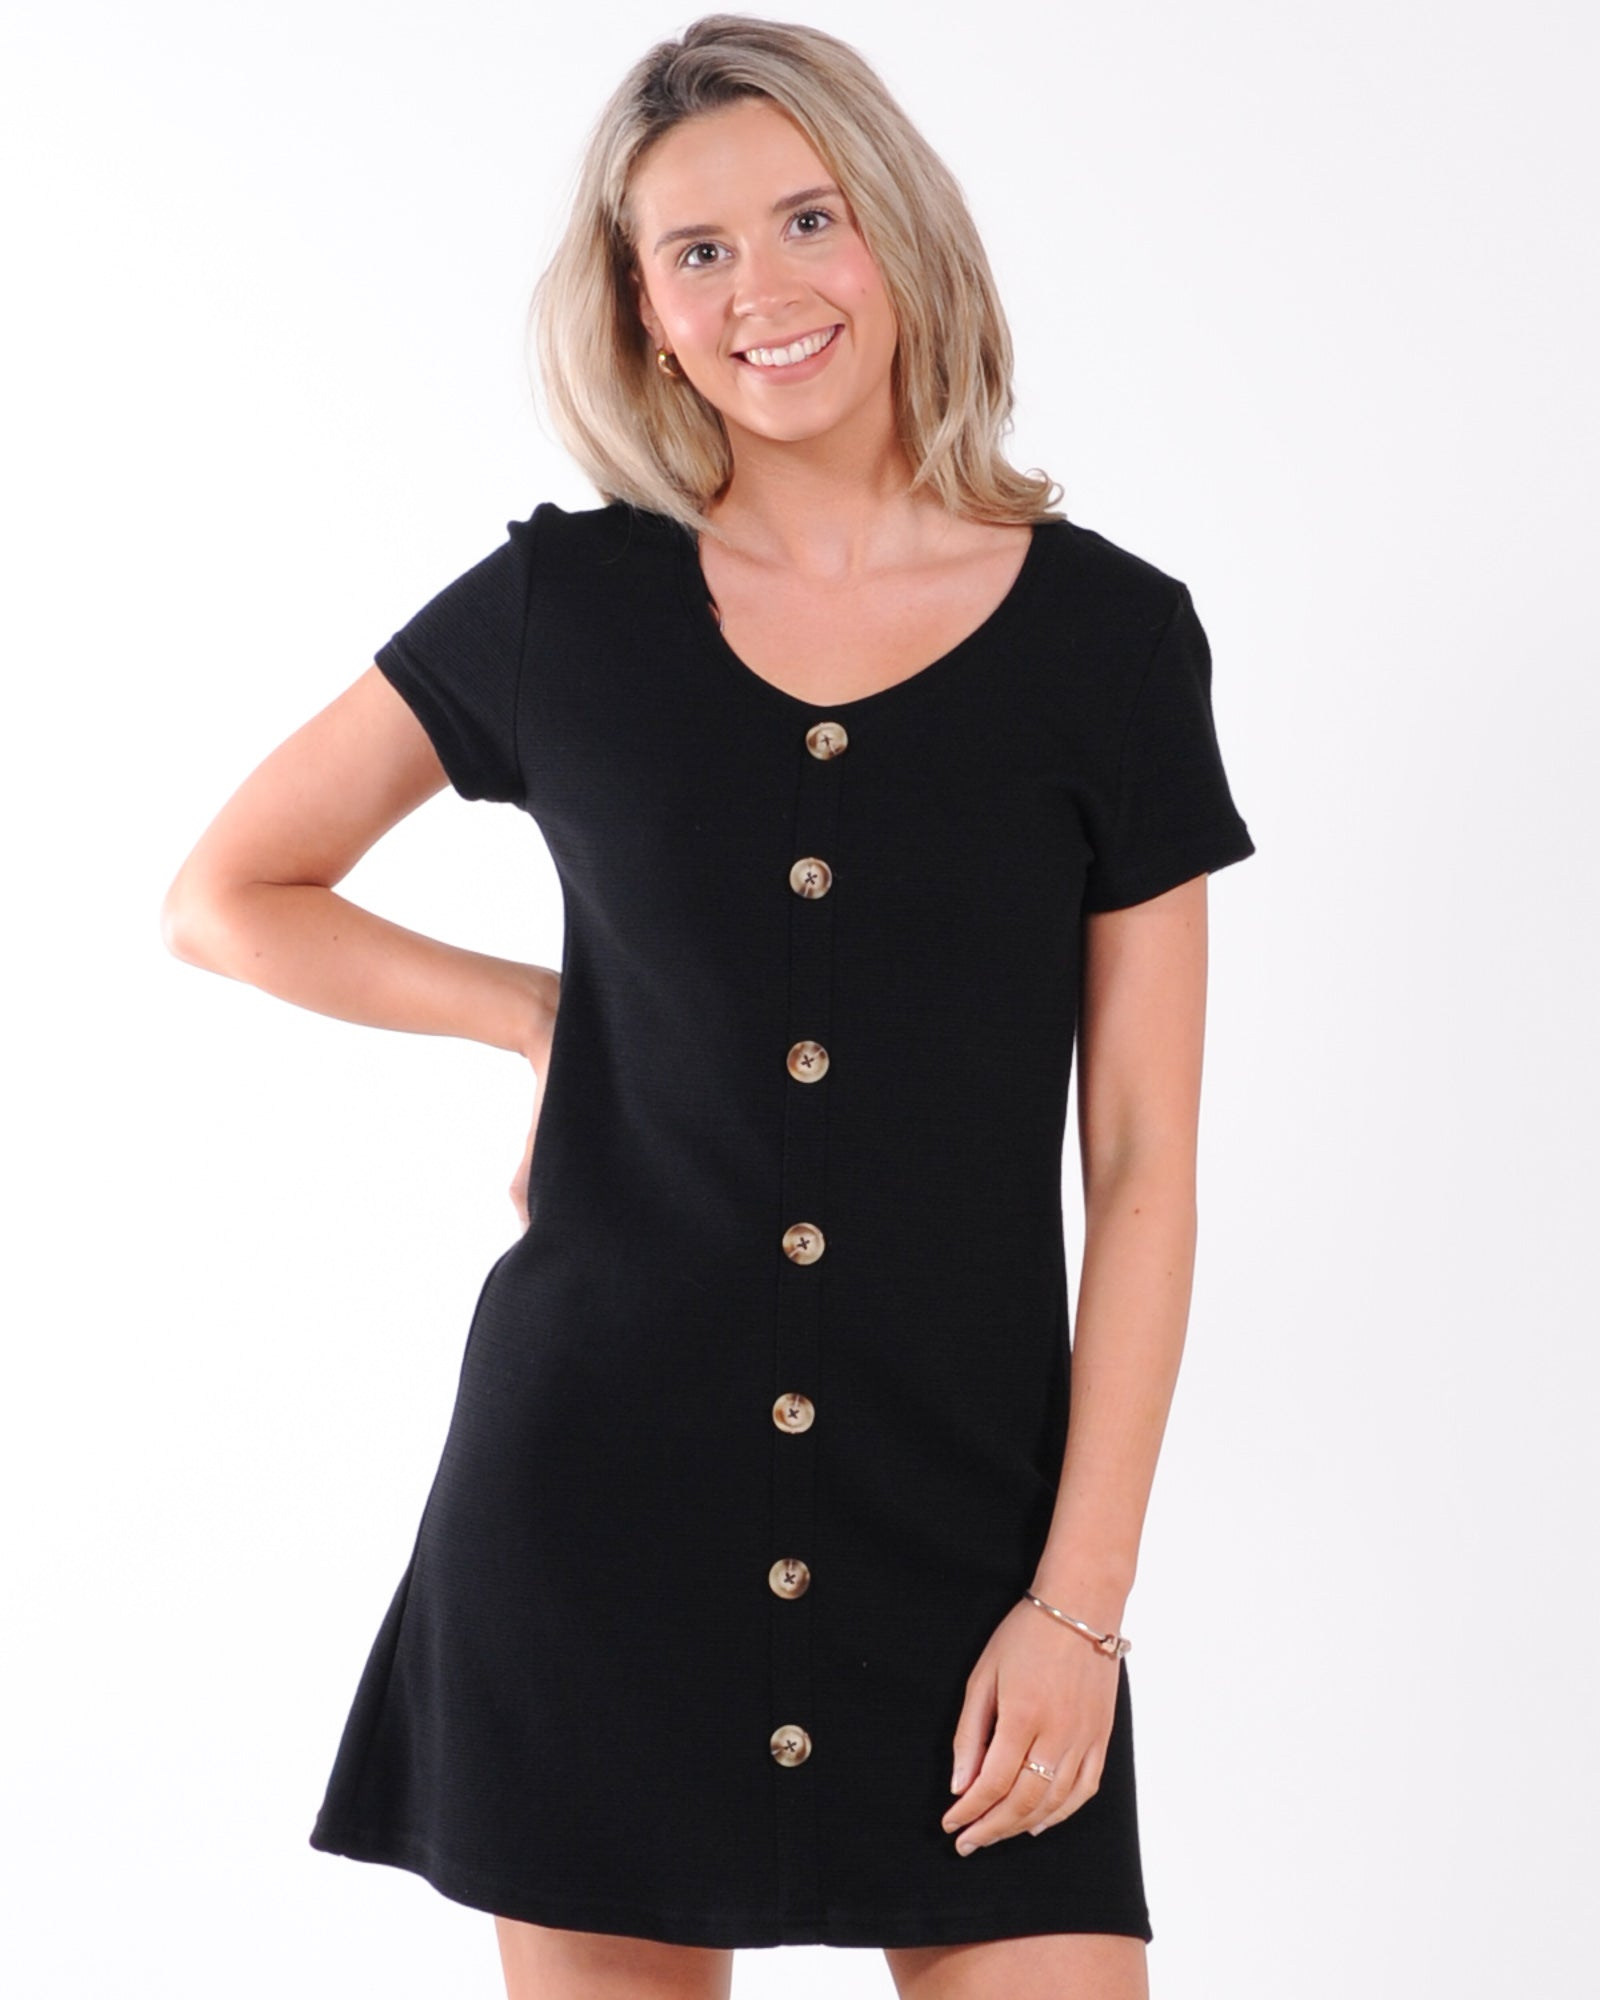 All About Eve Old School Dress - Black